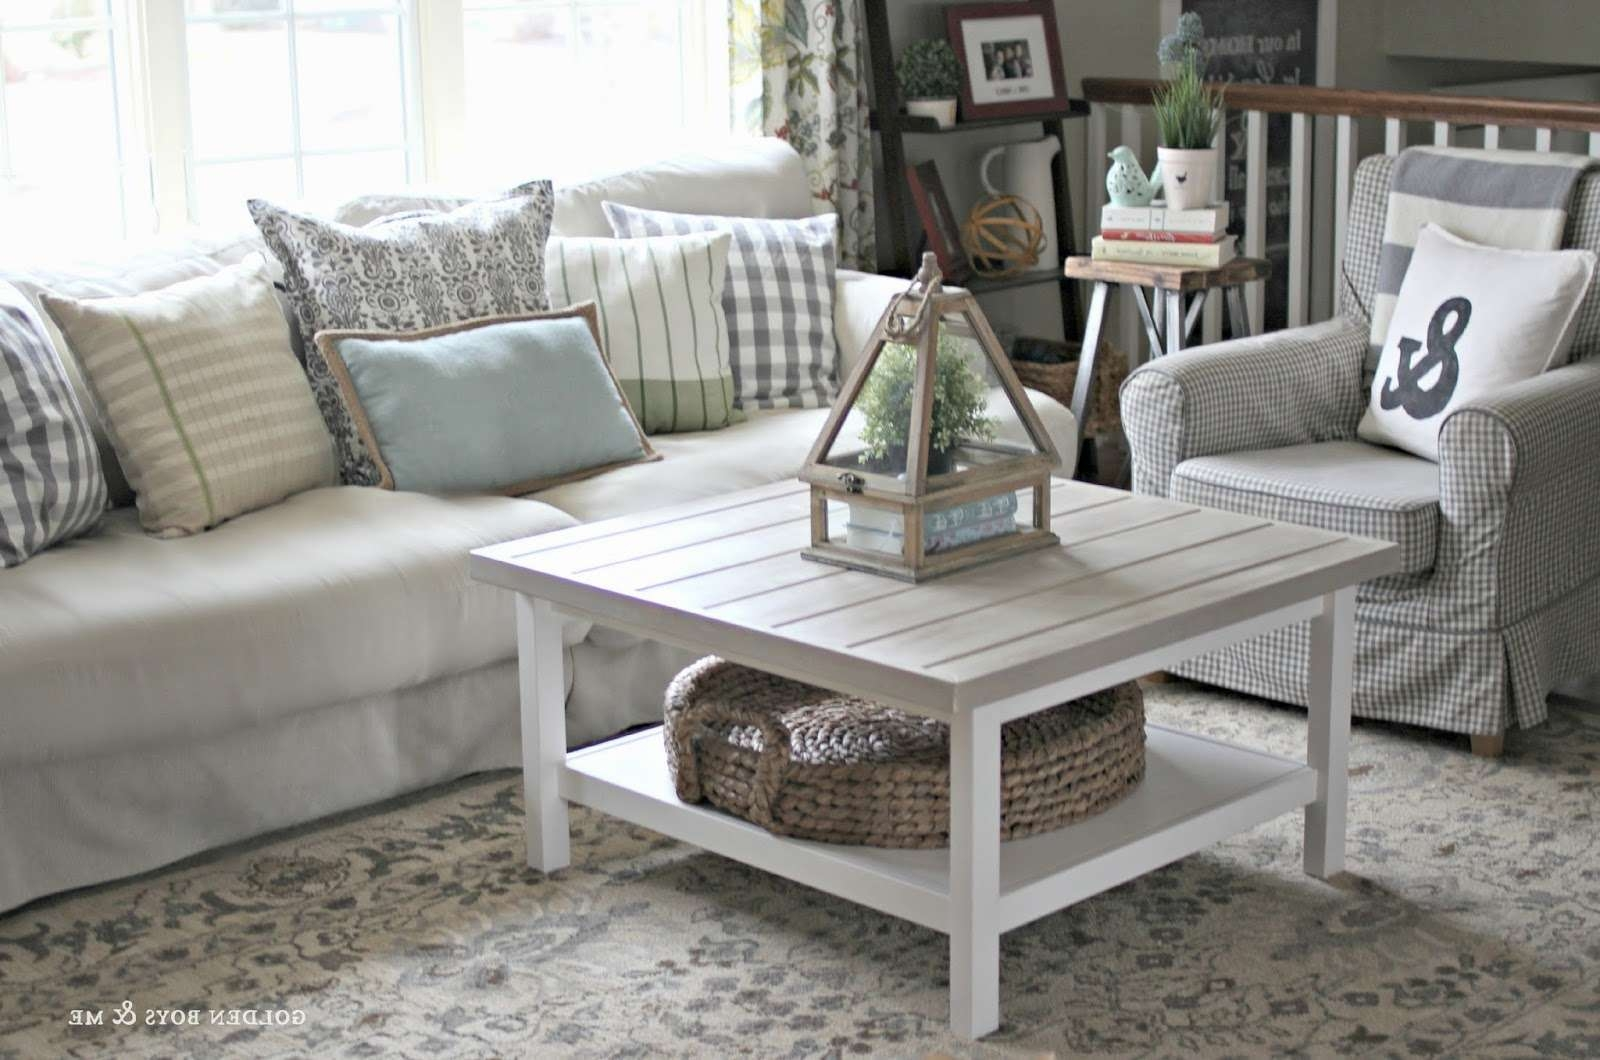 Most Recently Released Coffee Tables With Baskets Underneath With Regard To Coffee Table : Under Coffee Table Storage Baskets For Tableunder (View 16 of 20)